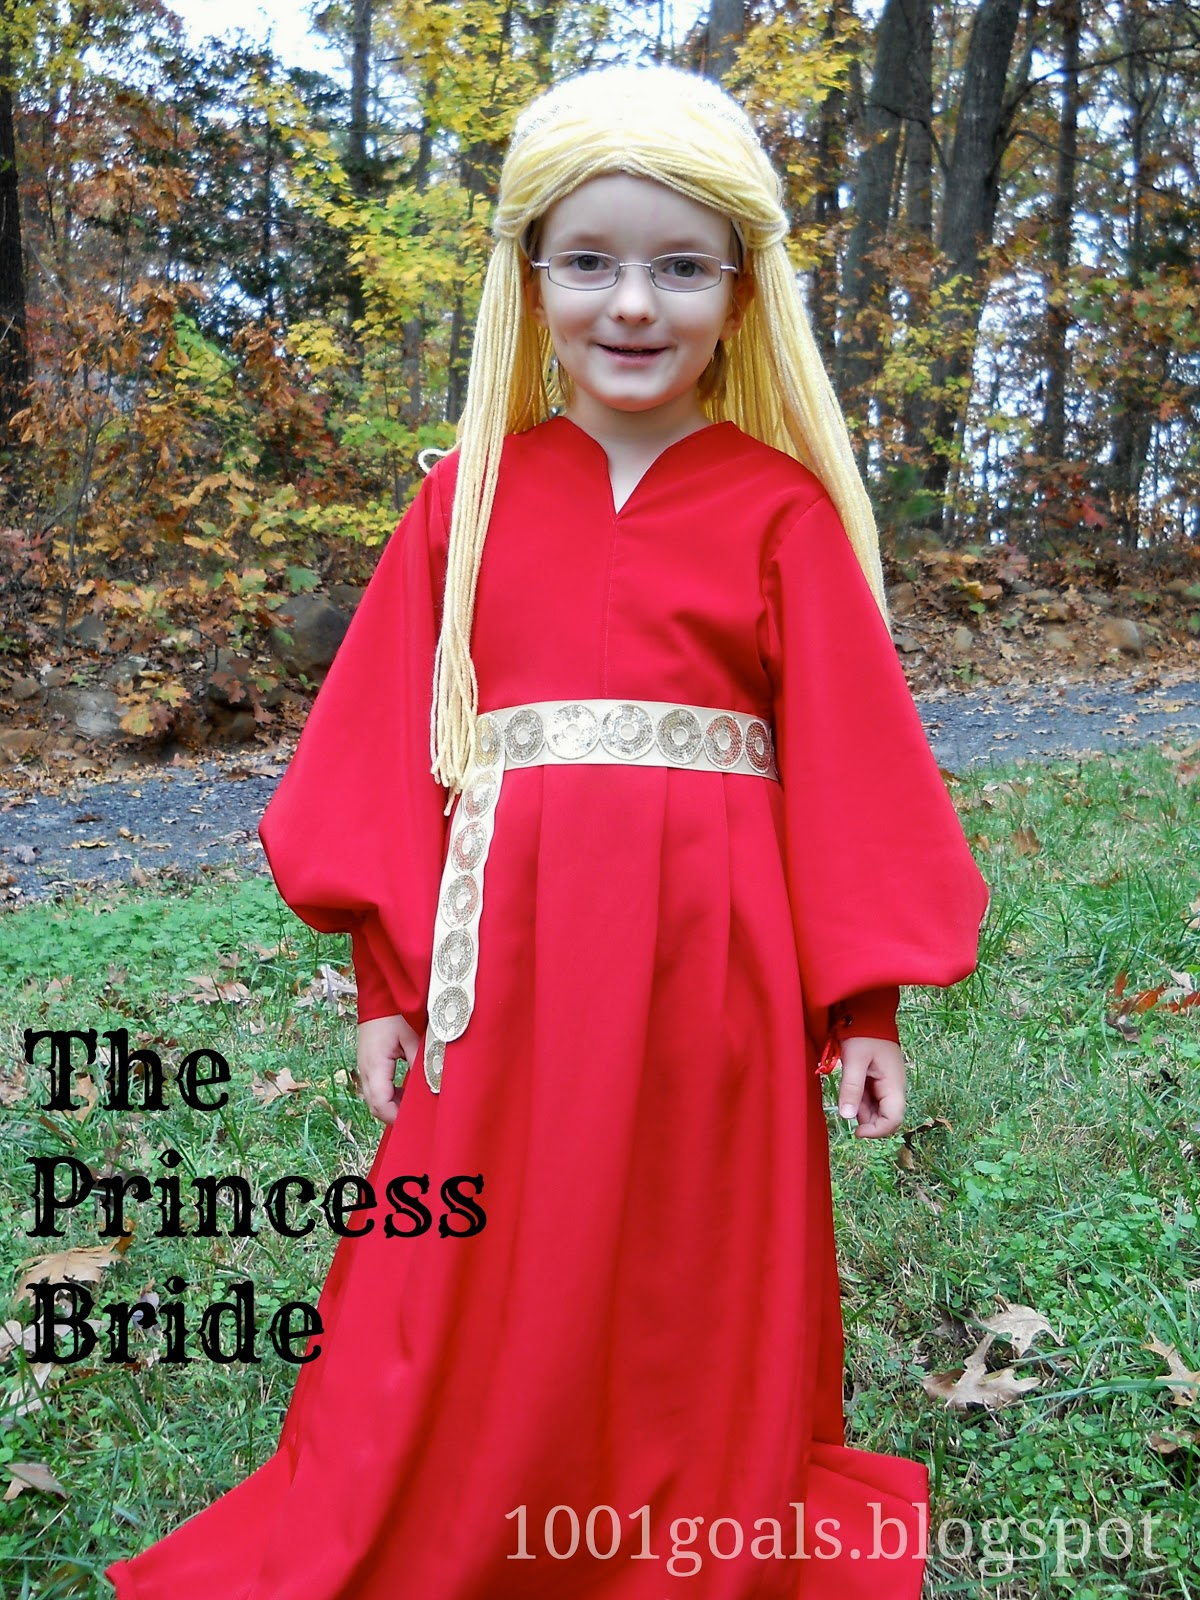 Princess bride adult costume